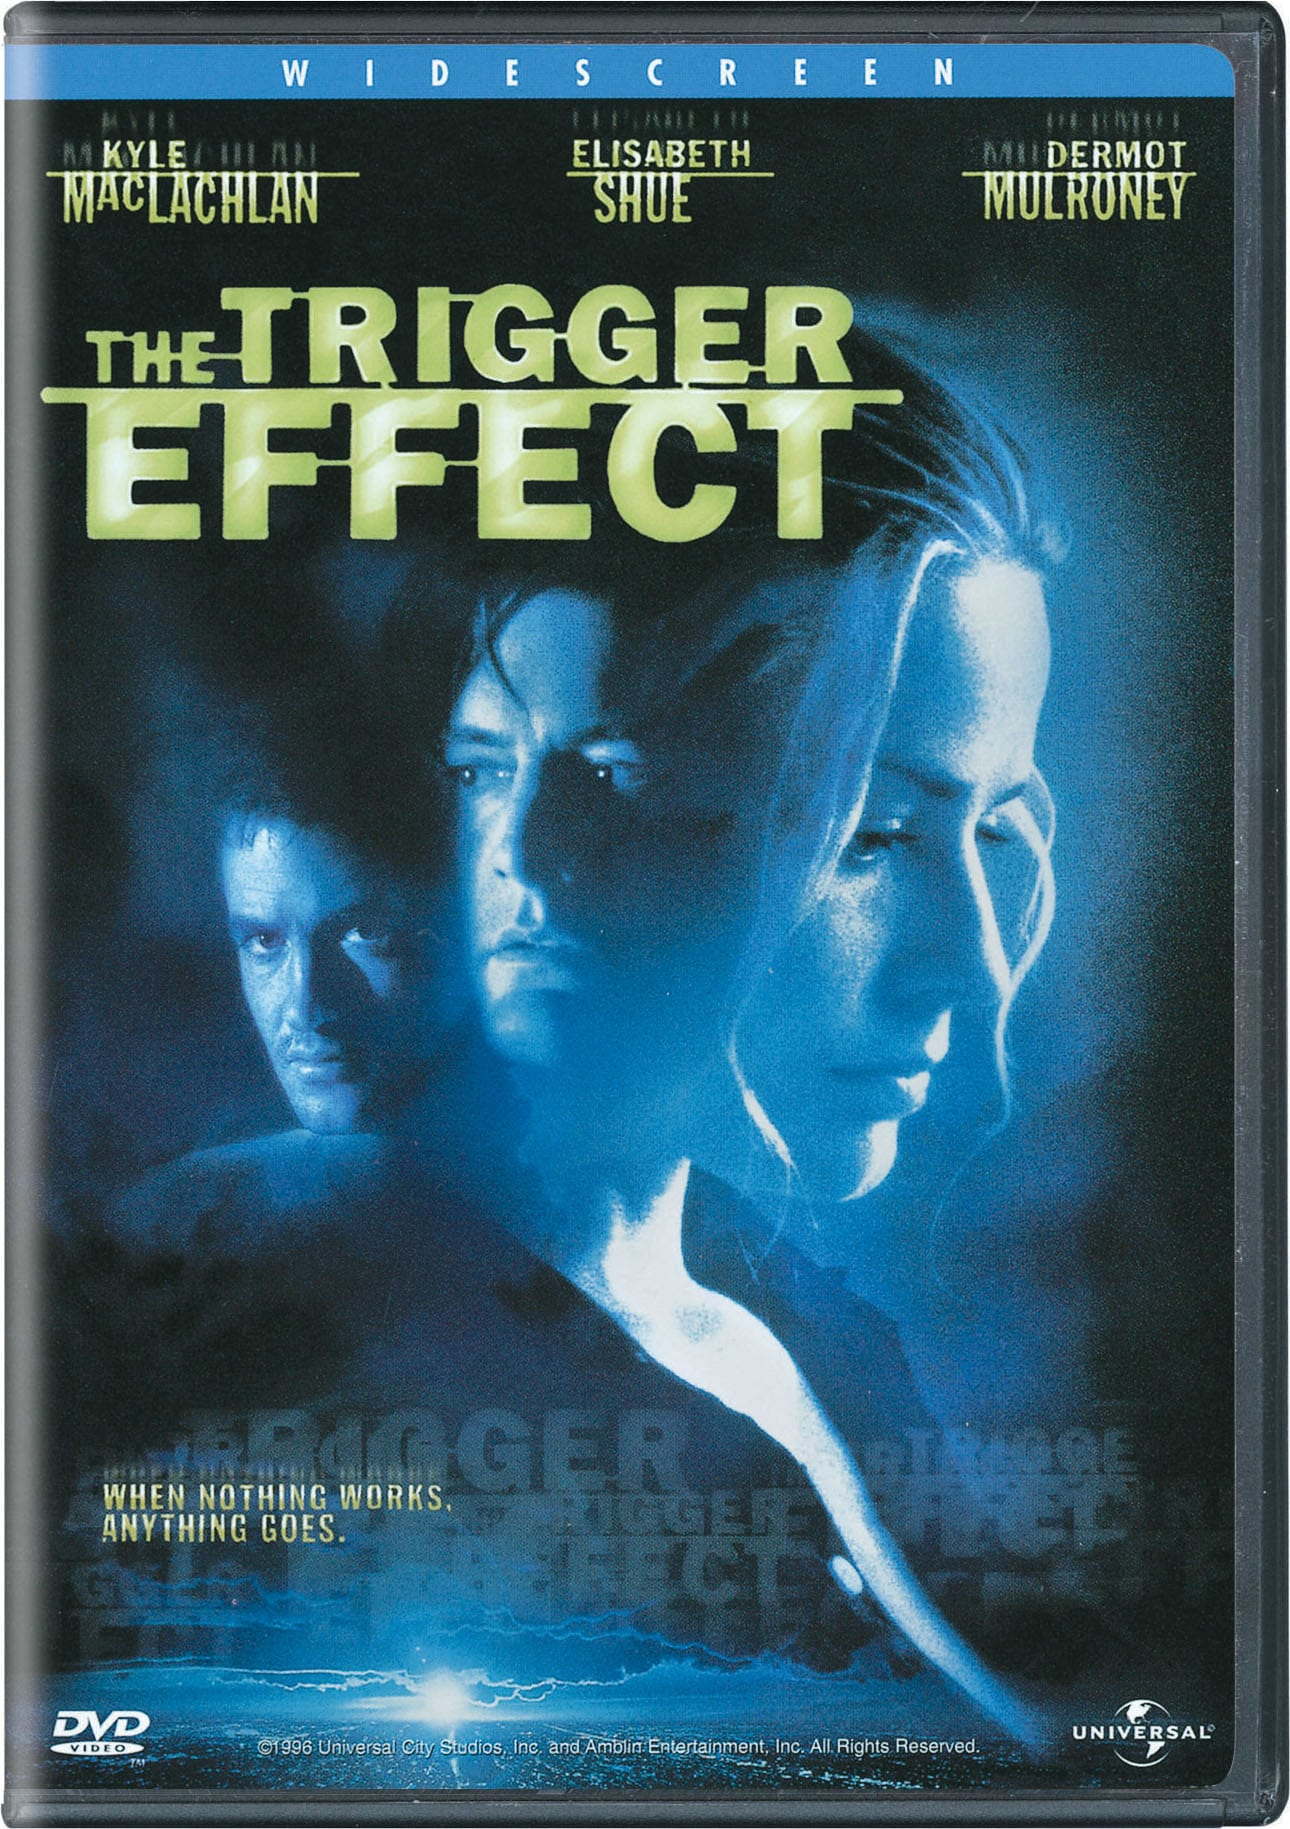 The Trigger Effect [DVD]